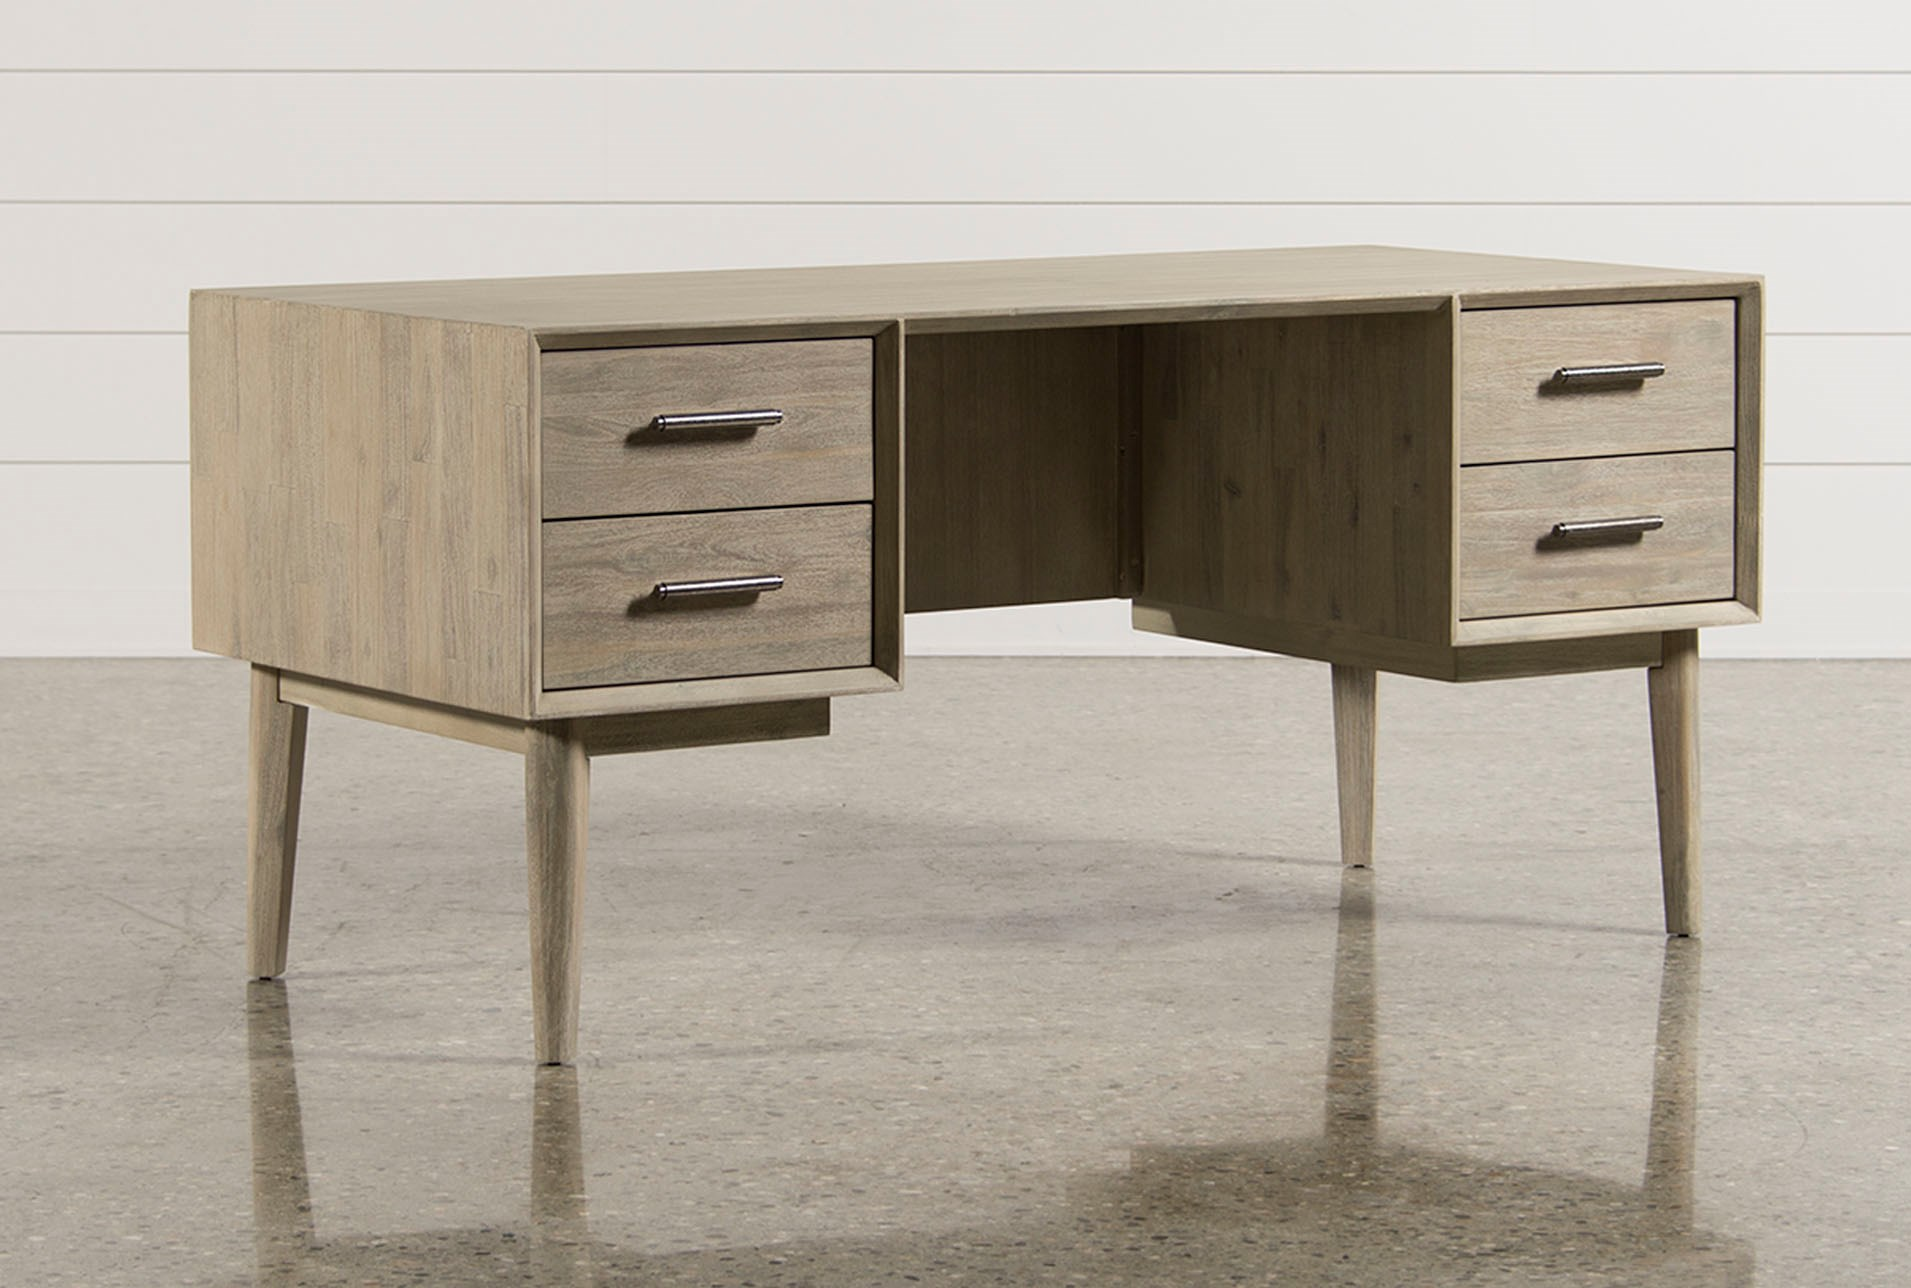 office desk for home use. Display Product Reviews For ALLEN DESK Office Desk Home Use